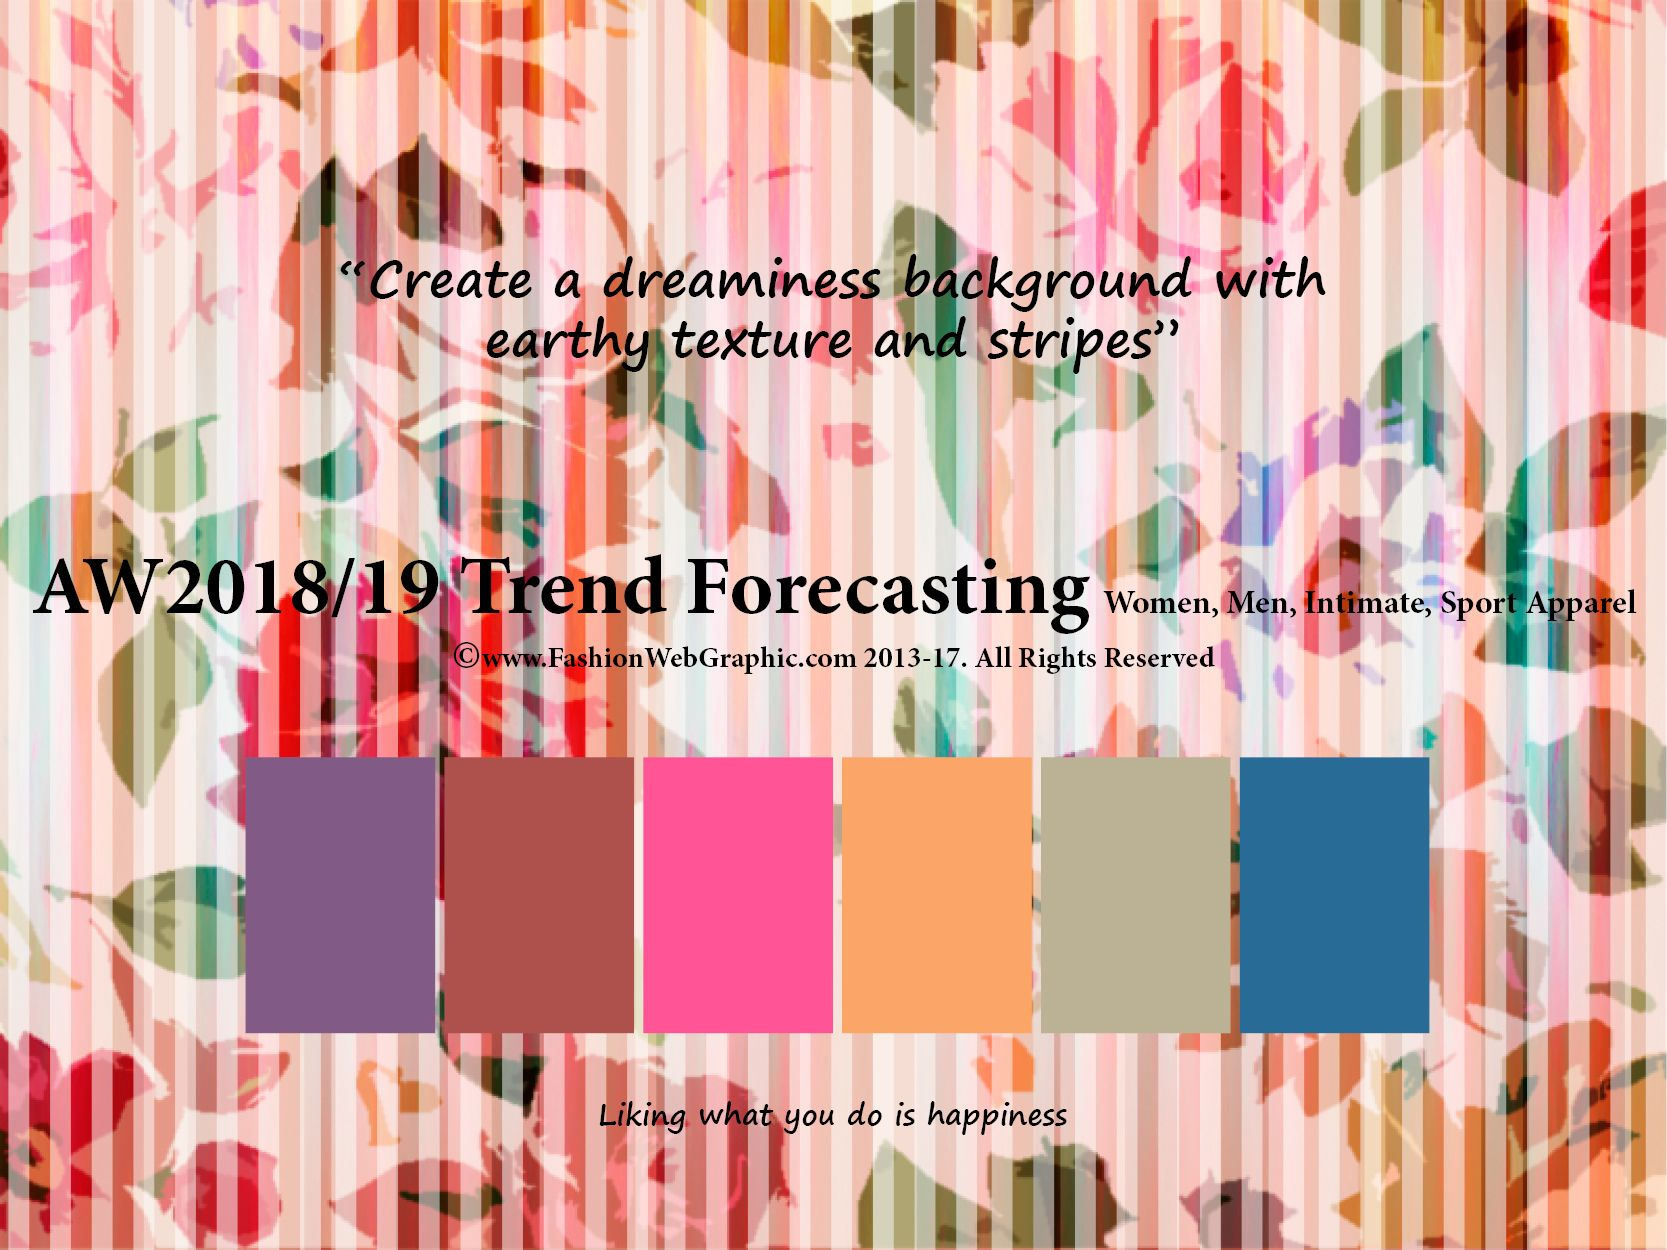 Autumn Winter 2018/2019 trend forecasting is A TREND/COLOR ...